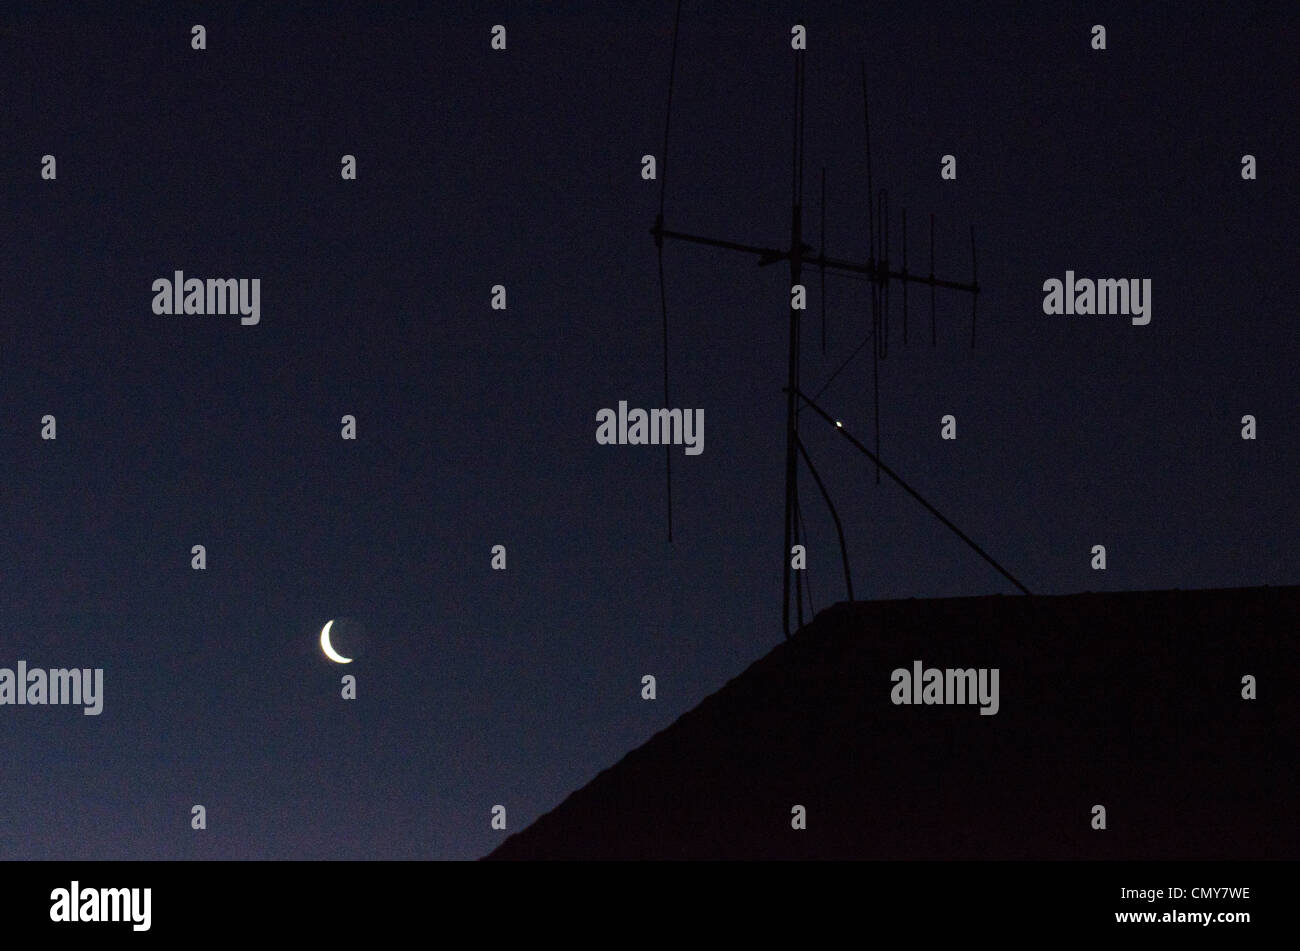 A Night Sky with the Moon and TV aerial antenna on house roof. - Stock Image